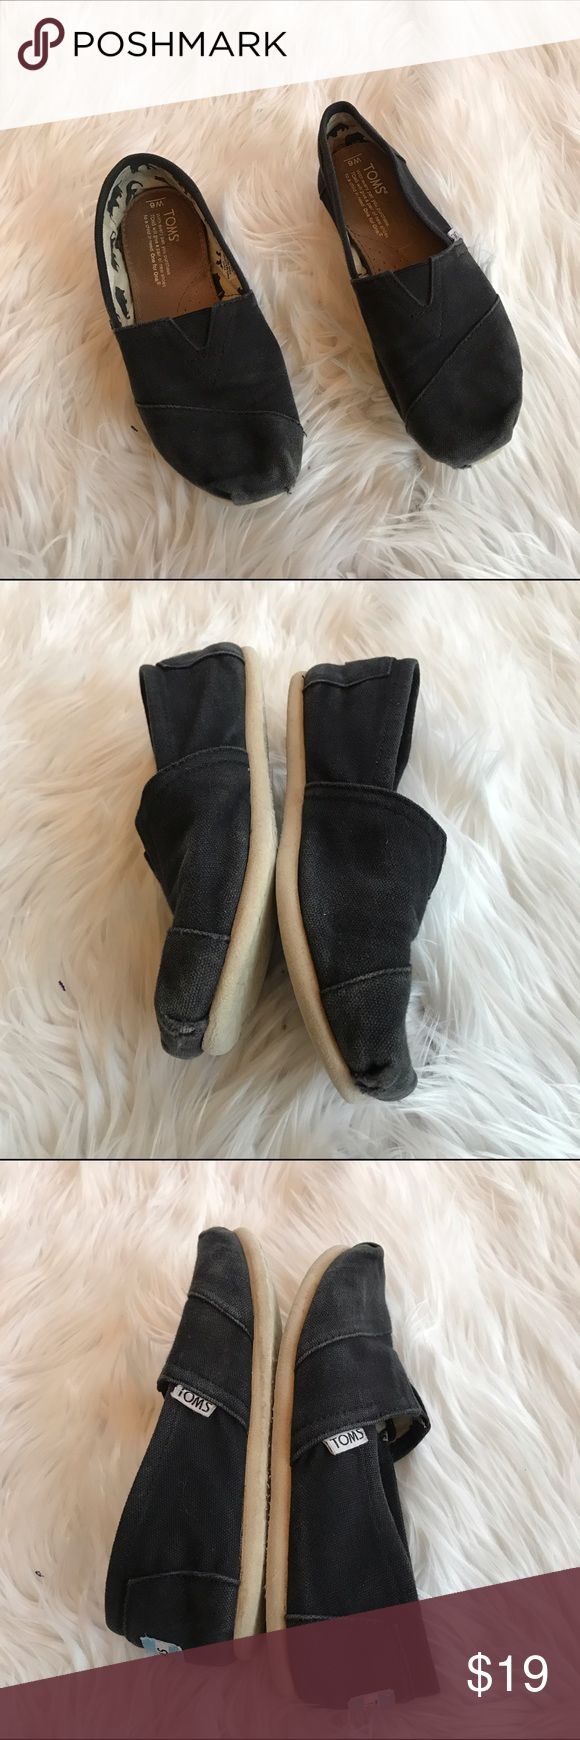 ❤️❤️ BLACK CANVAS TOMS B1 Does not come with original box Condition: These have been worn and are slightly dirty/ some wear in toe area Heel height:none  Material: canvas  Item location: bin 1   **bundles save 10%** no trades/no modeling/no asking for lowest TOMS Shoes Flats & Loafers